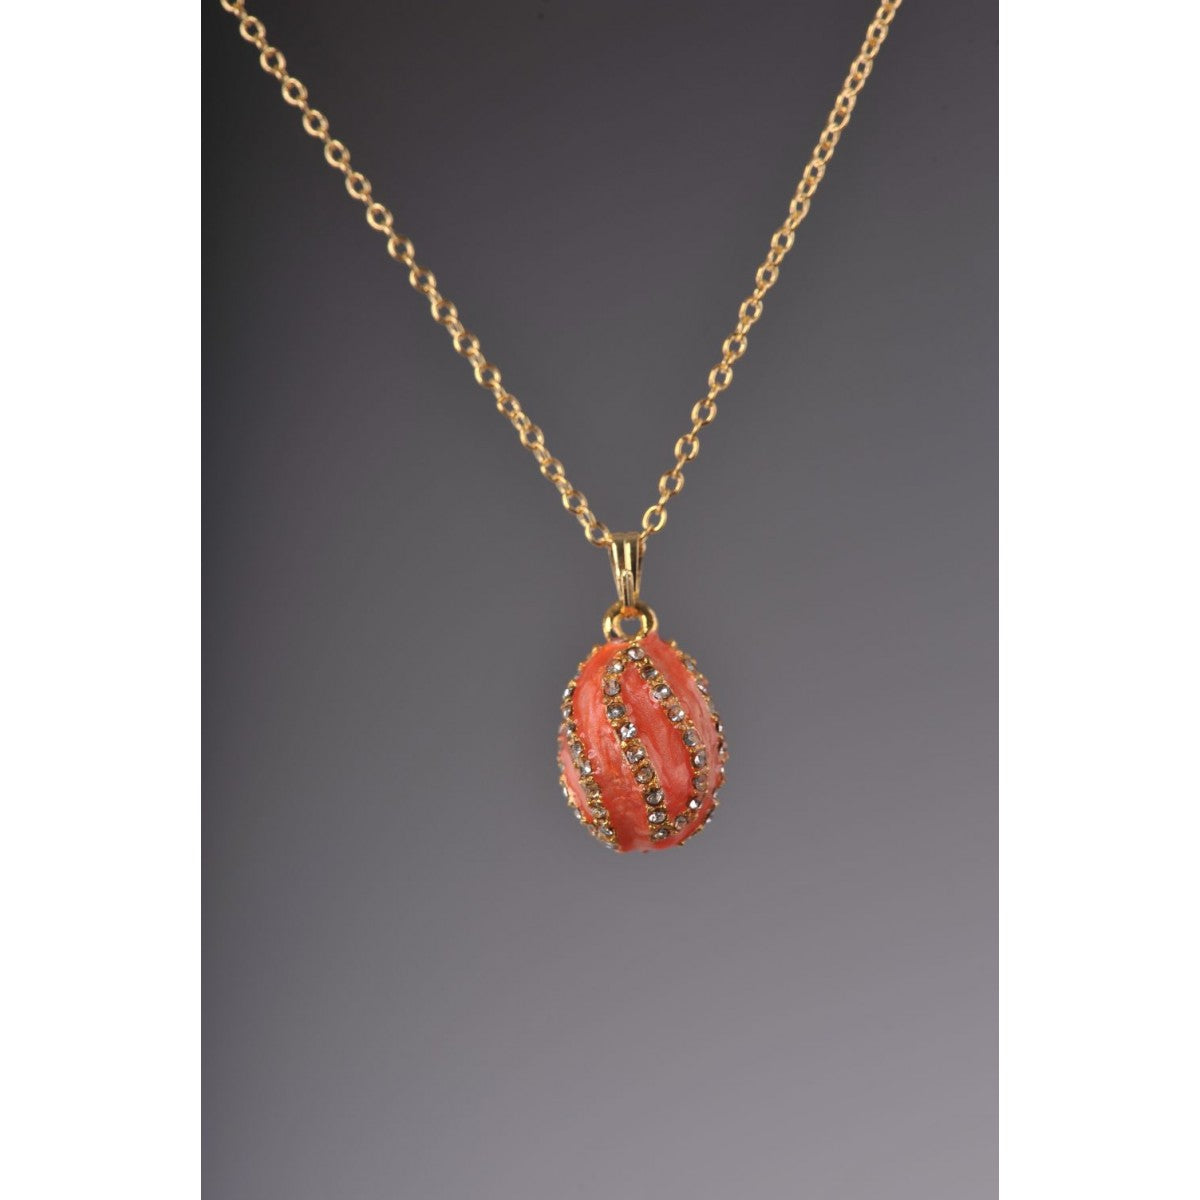 Salmon spiral faberge Egg Pendant Locket Necklace